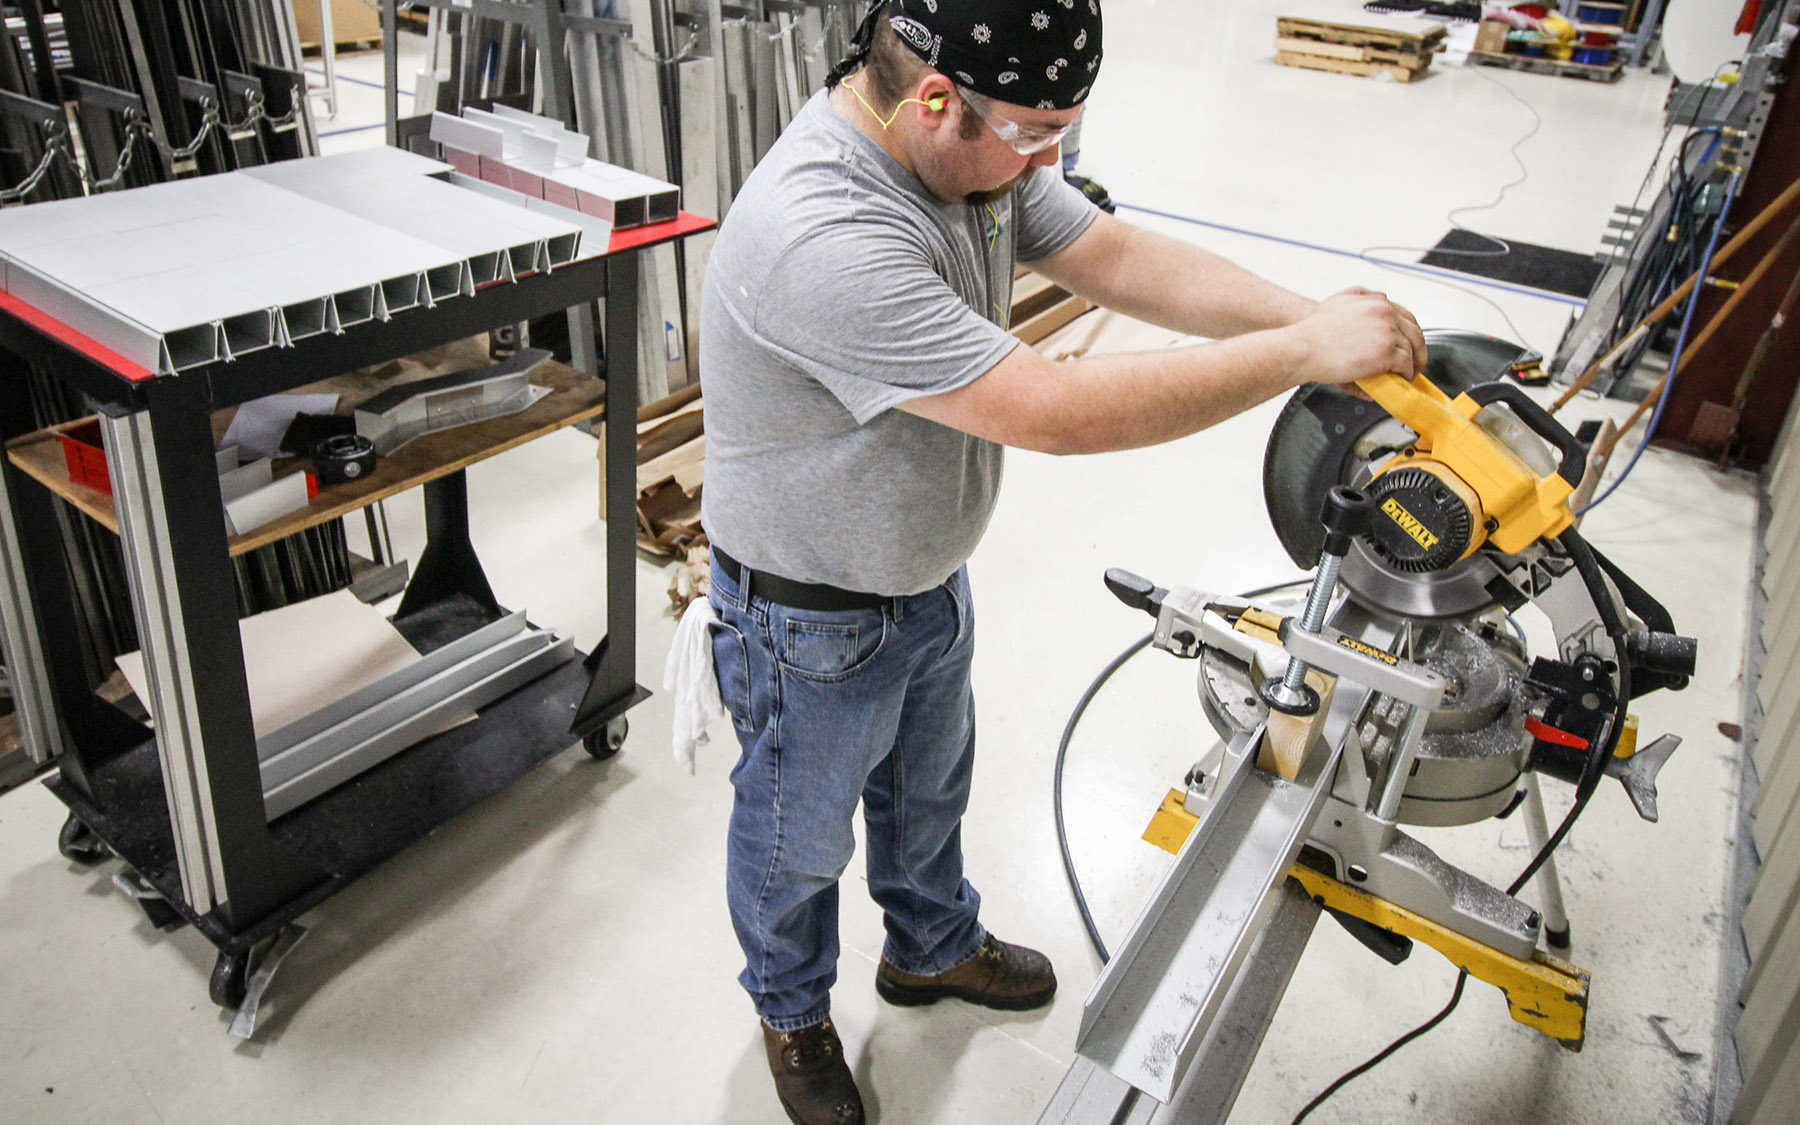 LMC alumnus working at Edgewater Automation